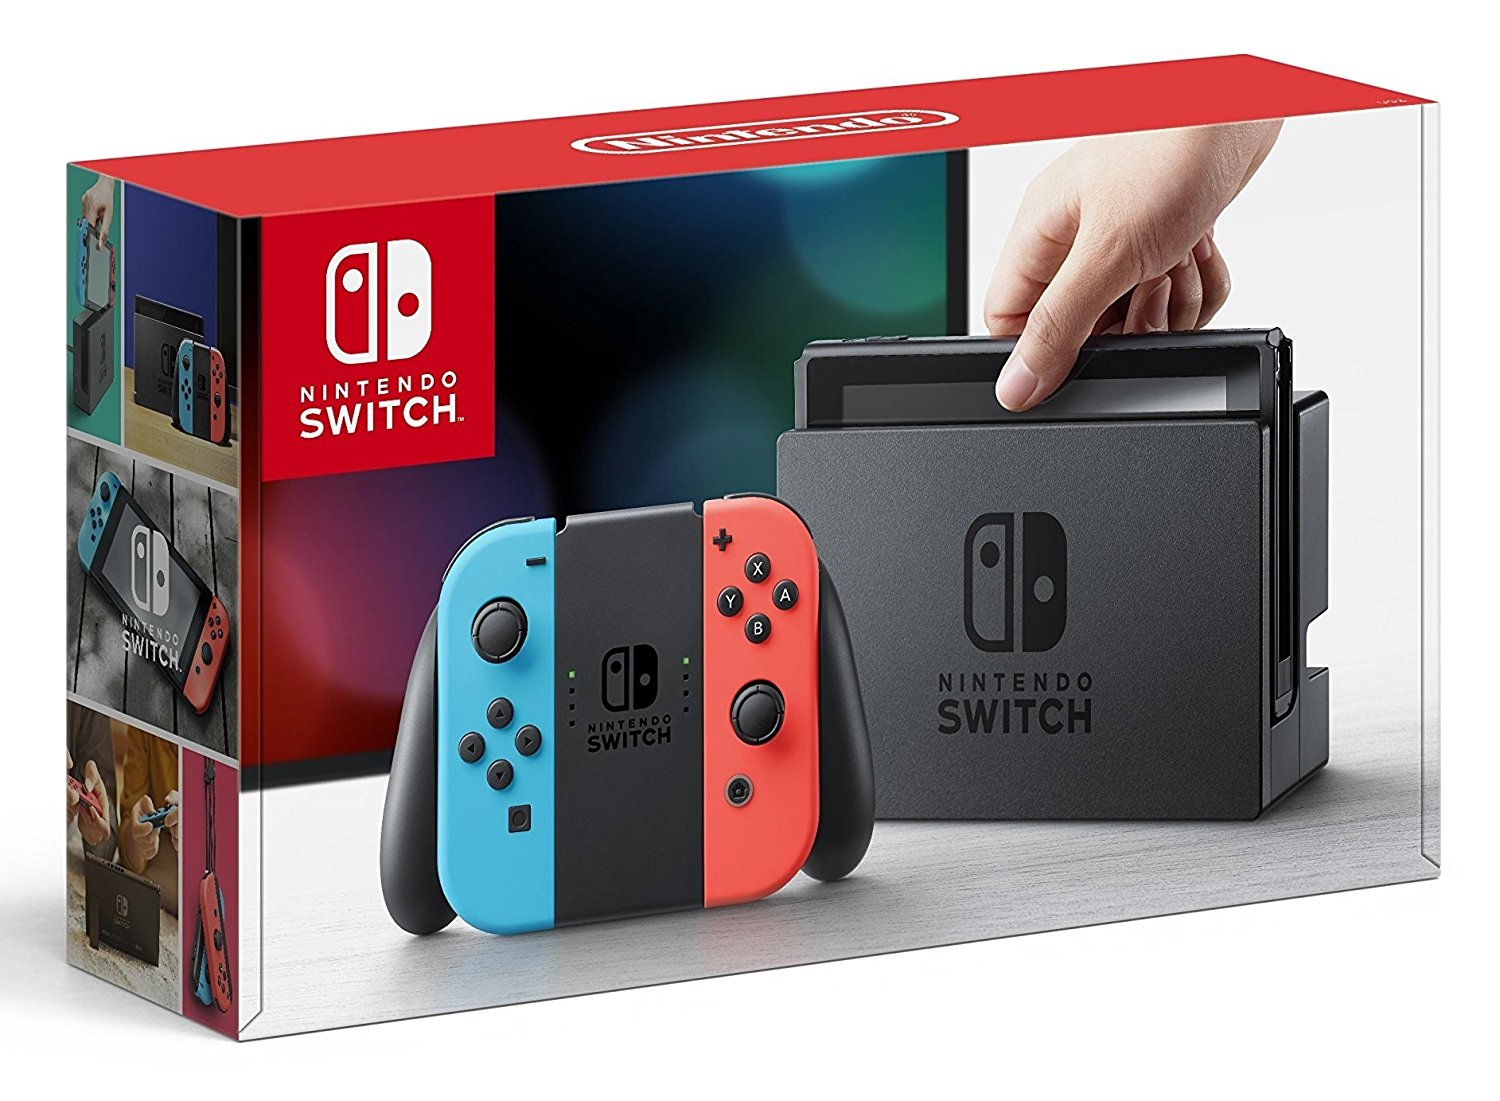 The Wall Street Journal Reports That Nintendo Used Aircraft To Ship Switch  Consoles To North America And Europe In March In Order To Replenish Stock  In